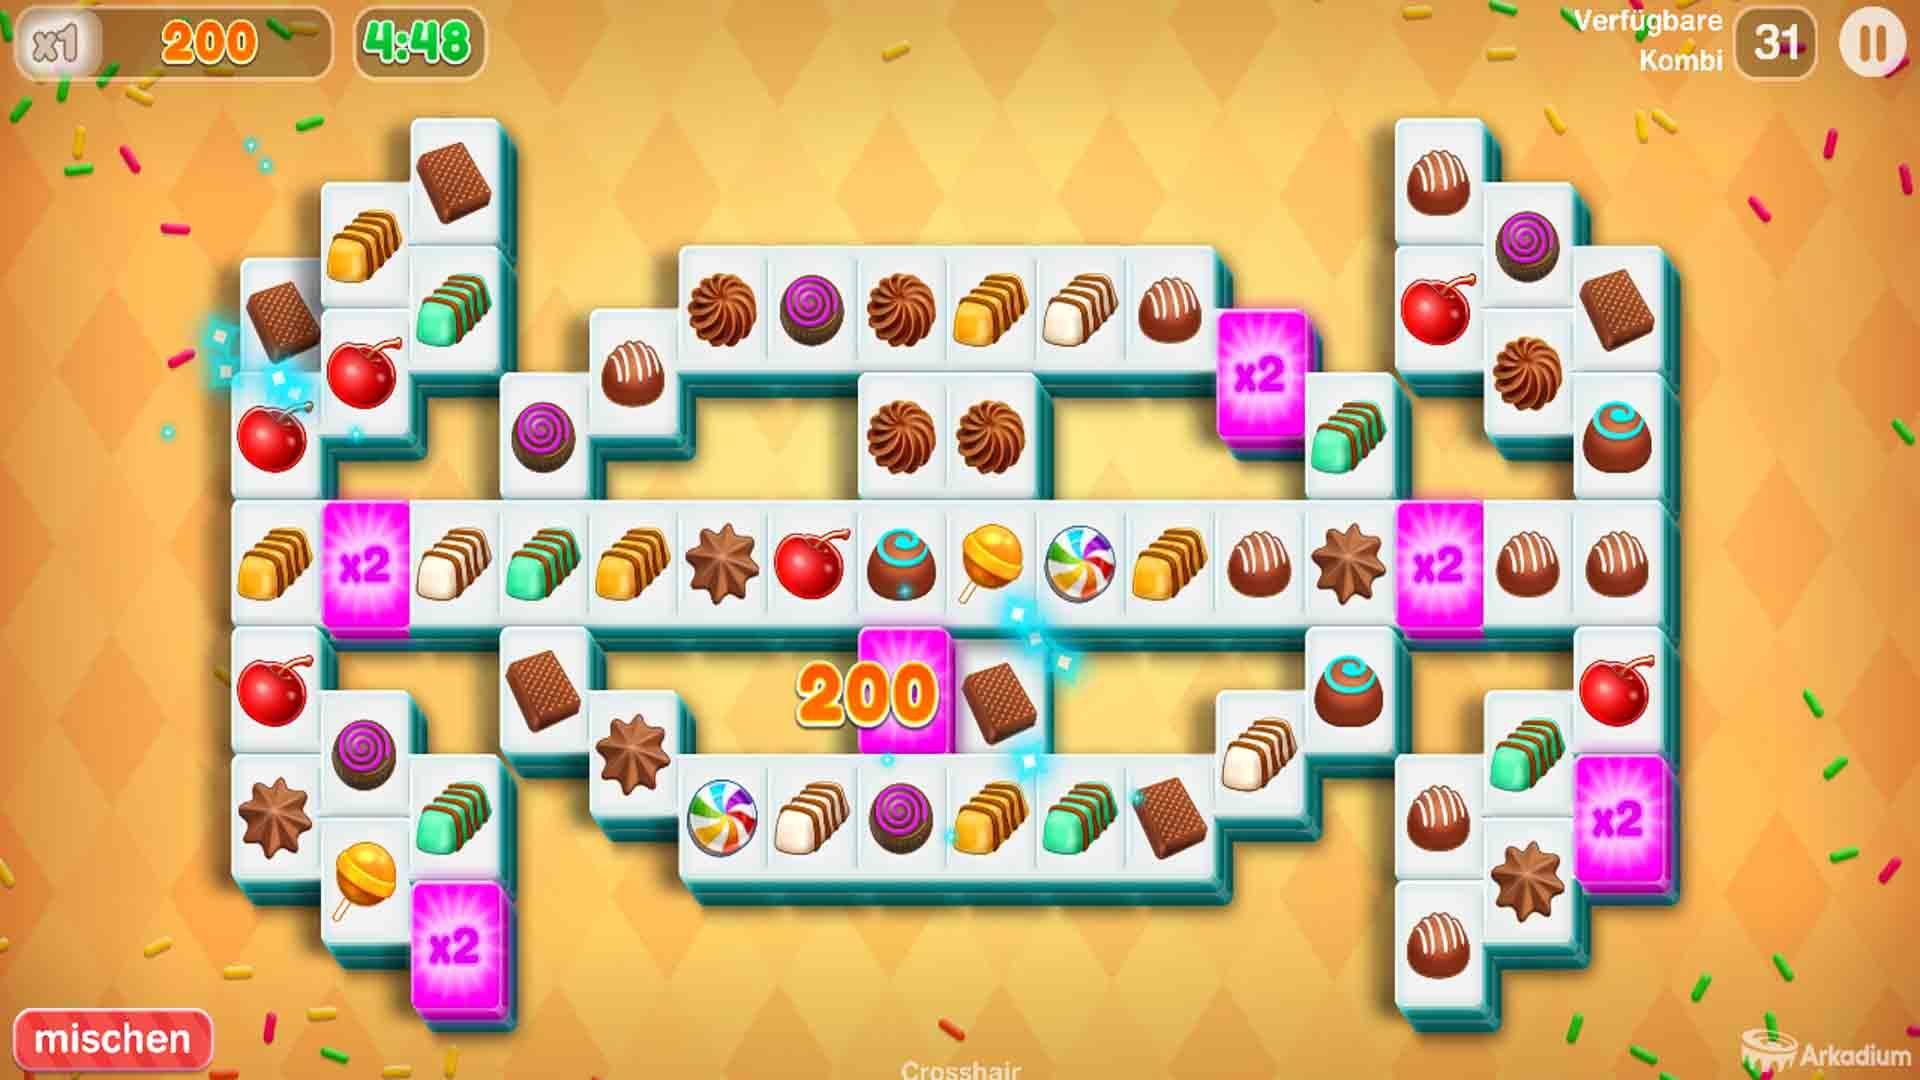 Rtl Spiele Mahjong Candy